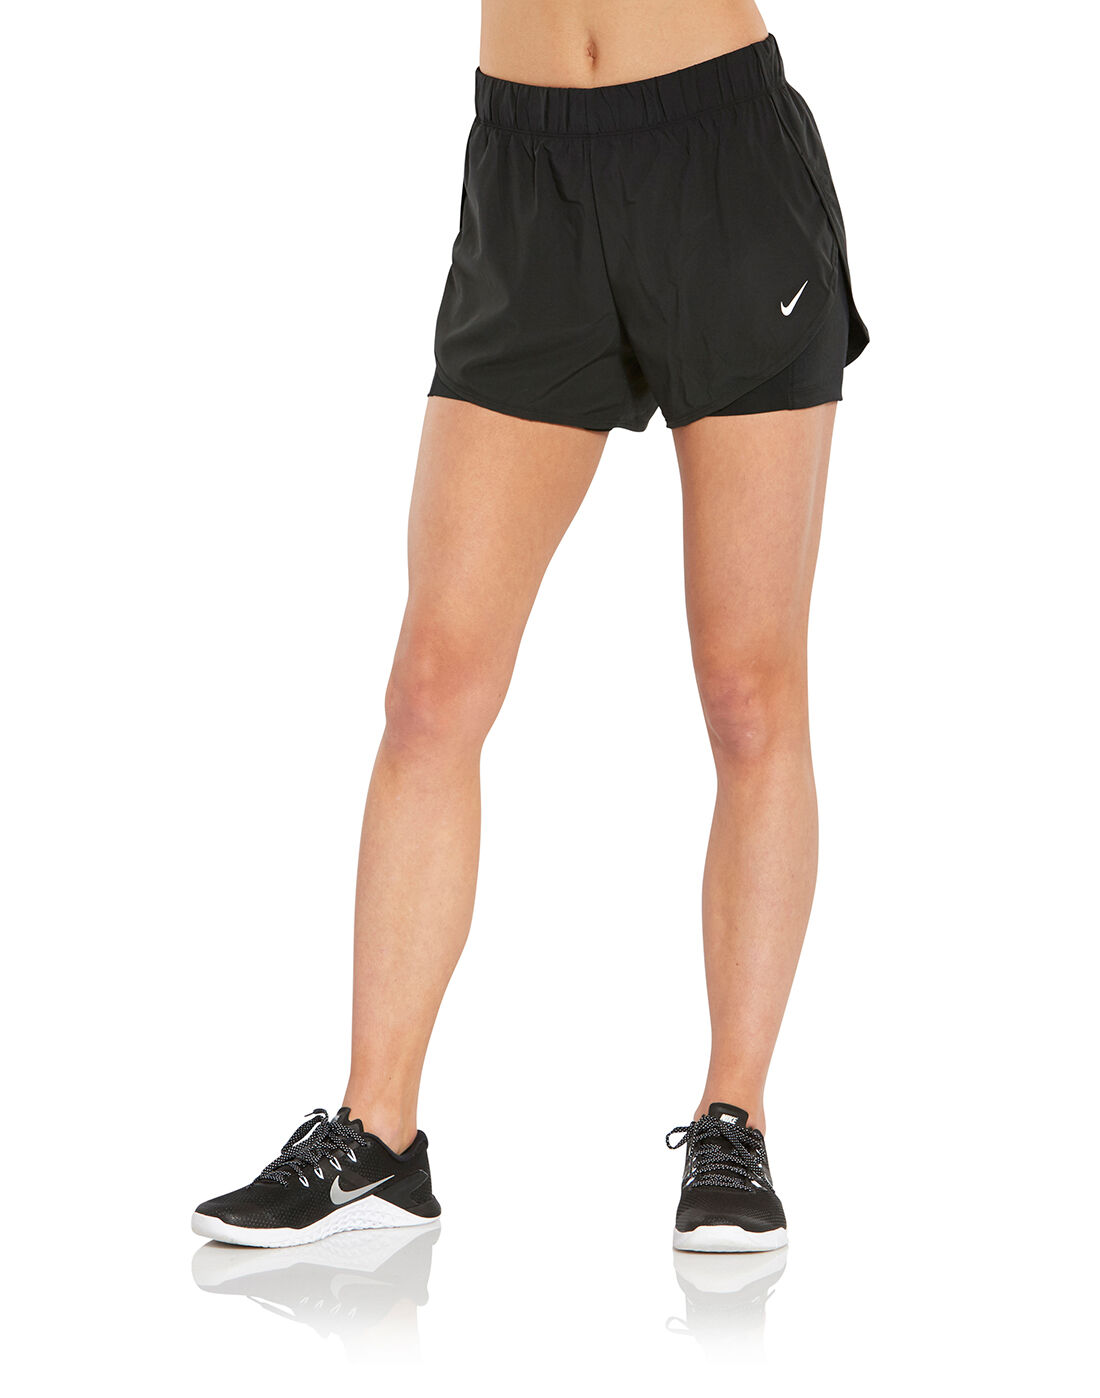 nike women's flex 2 in 1 training shorts 5 in